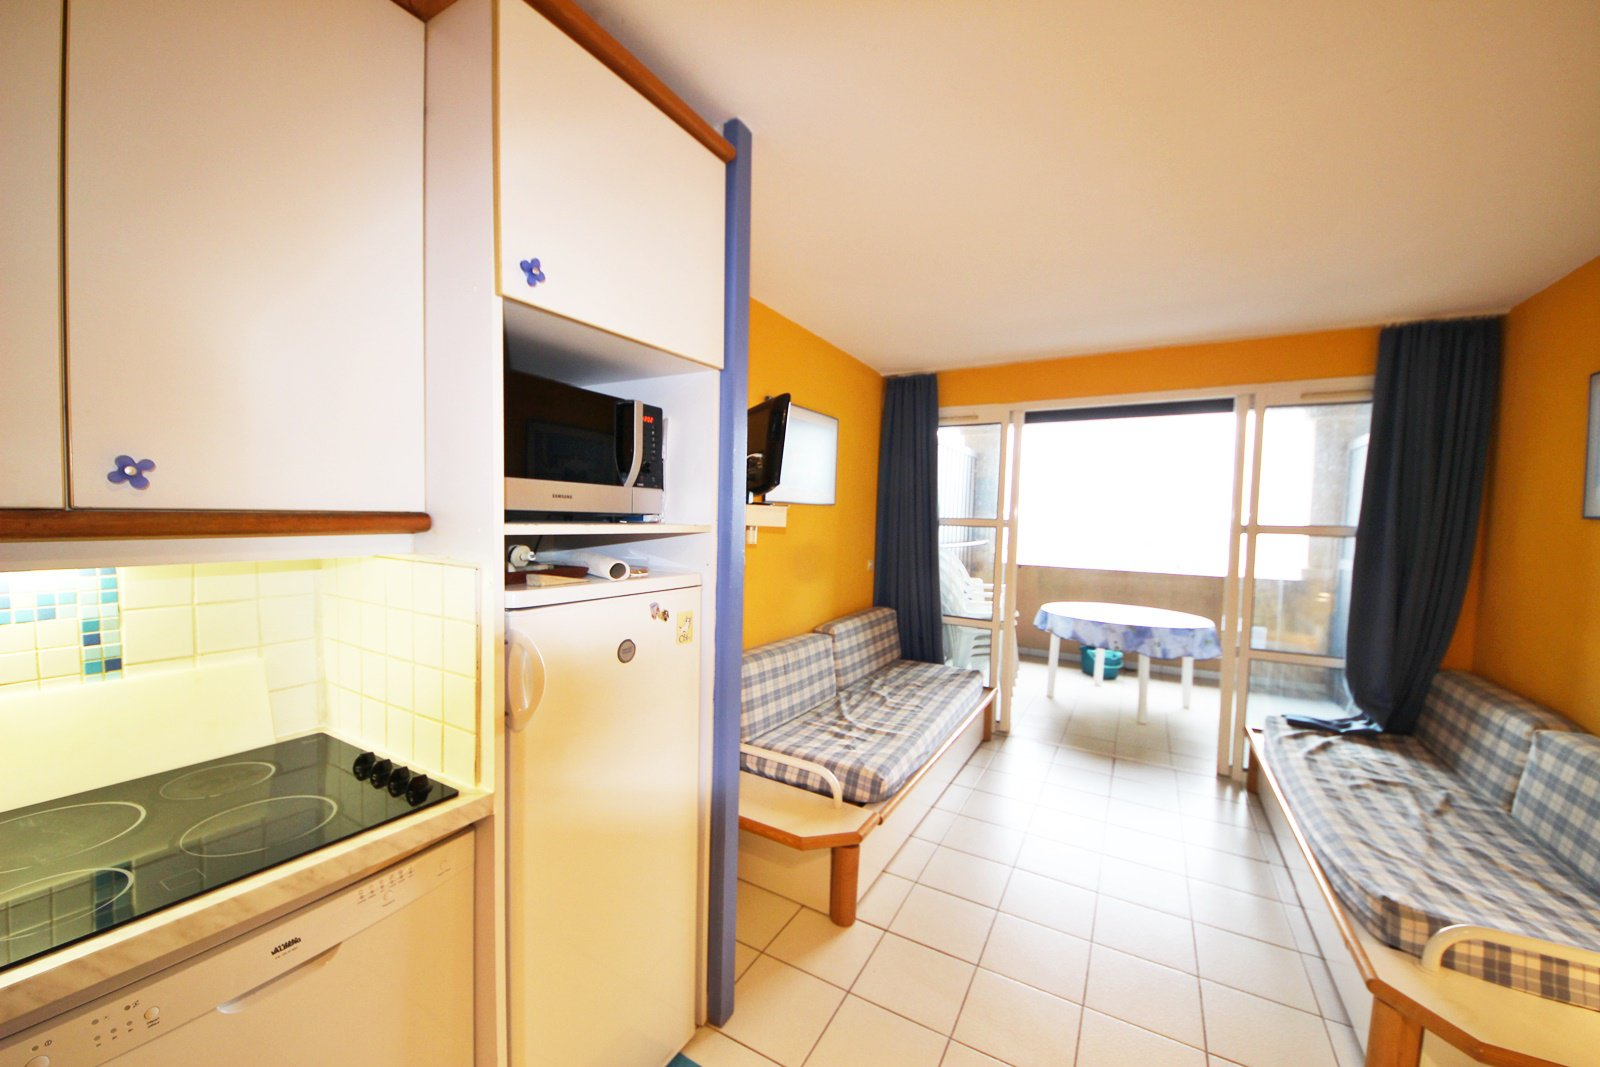 The kitchen and living room of the Cap Estérel apartment